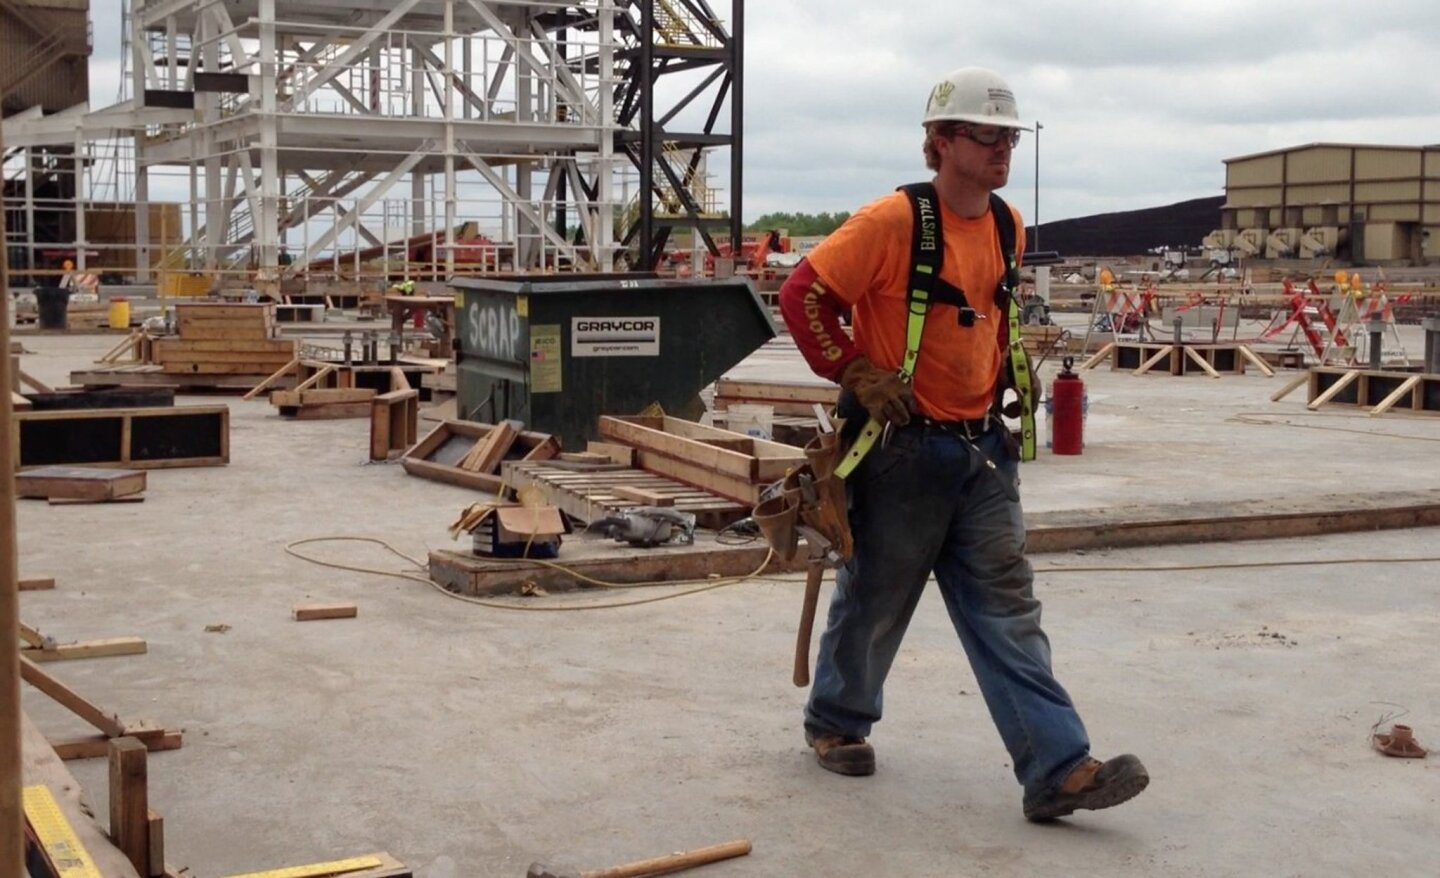 No. 10: Construction workers Fatality rate: 17.4 out of 100,000 workers Total 2012 fatalities: 210 Risks: Dangerous machines and tools, falling